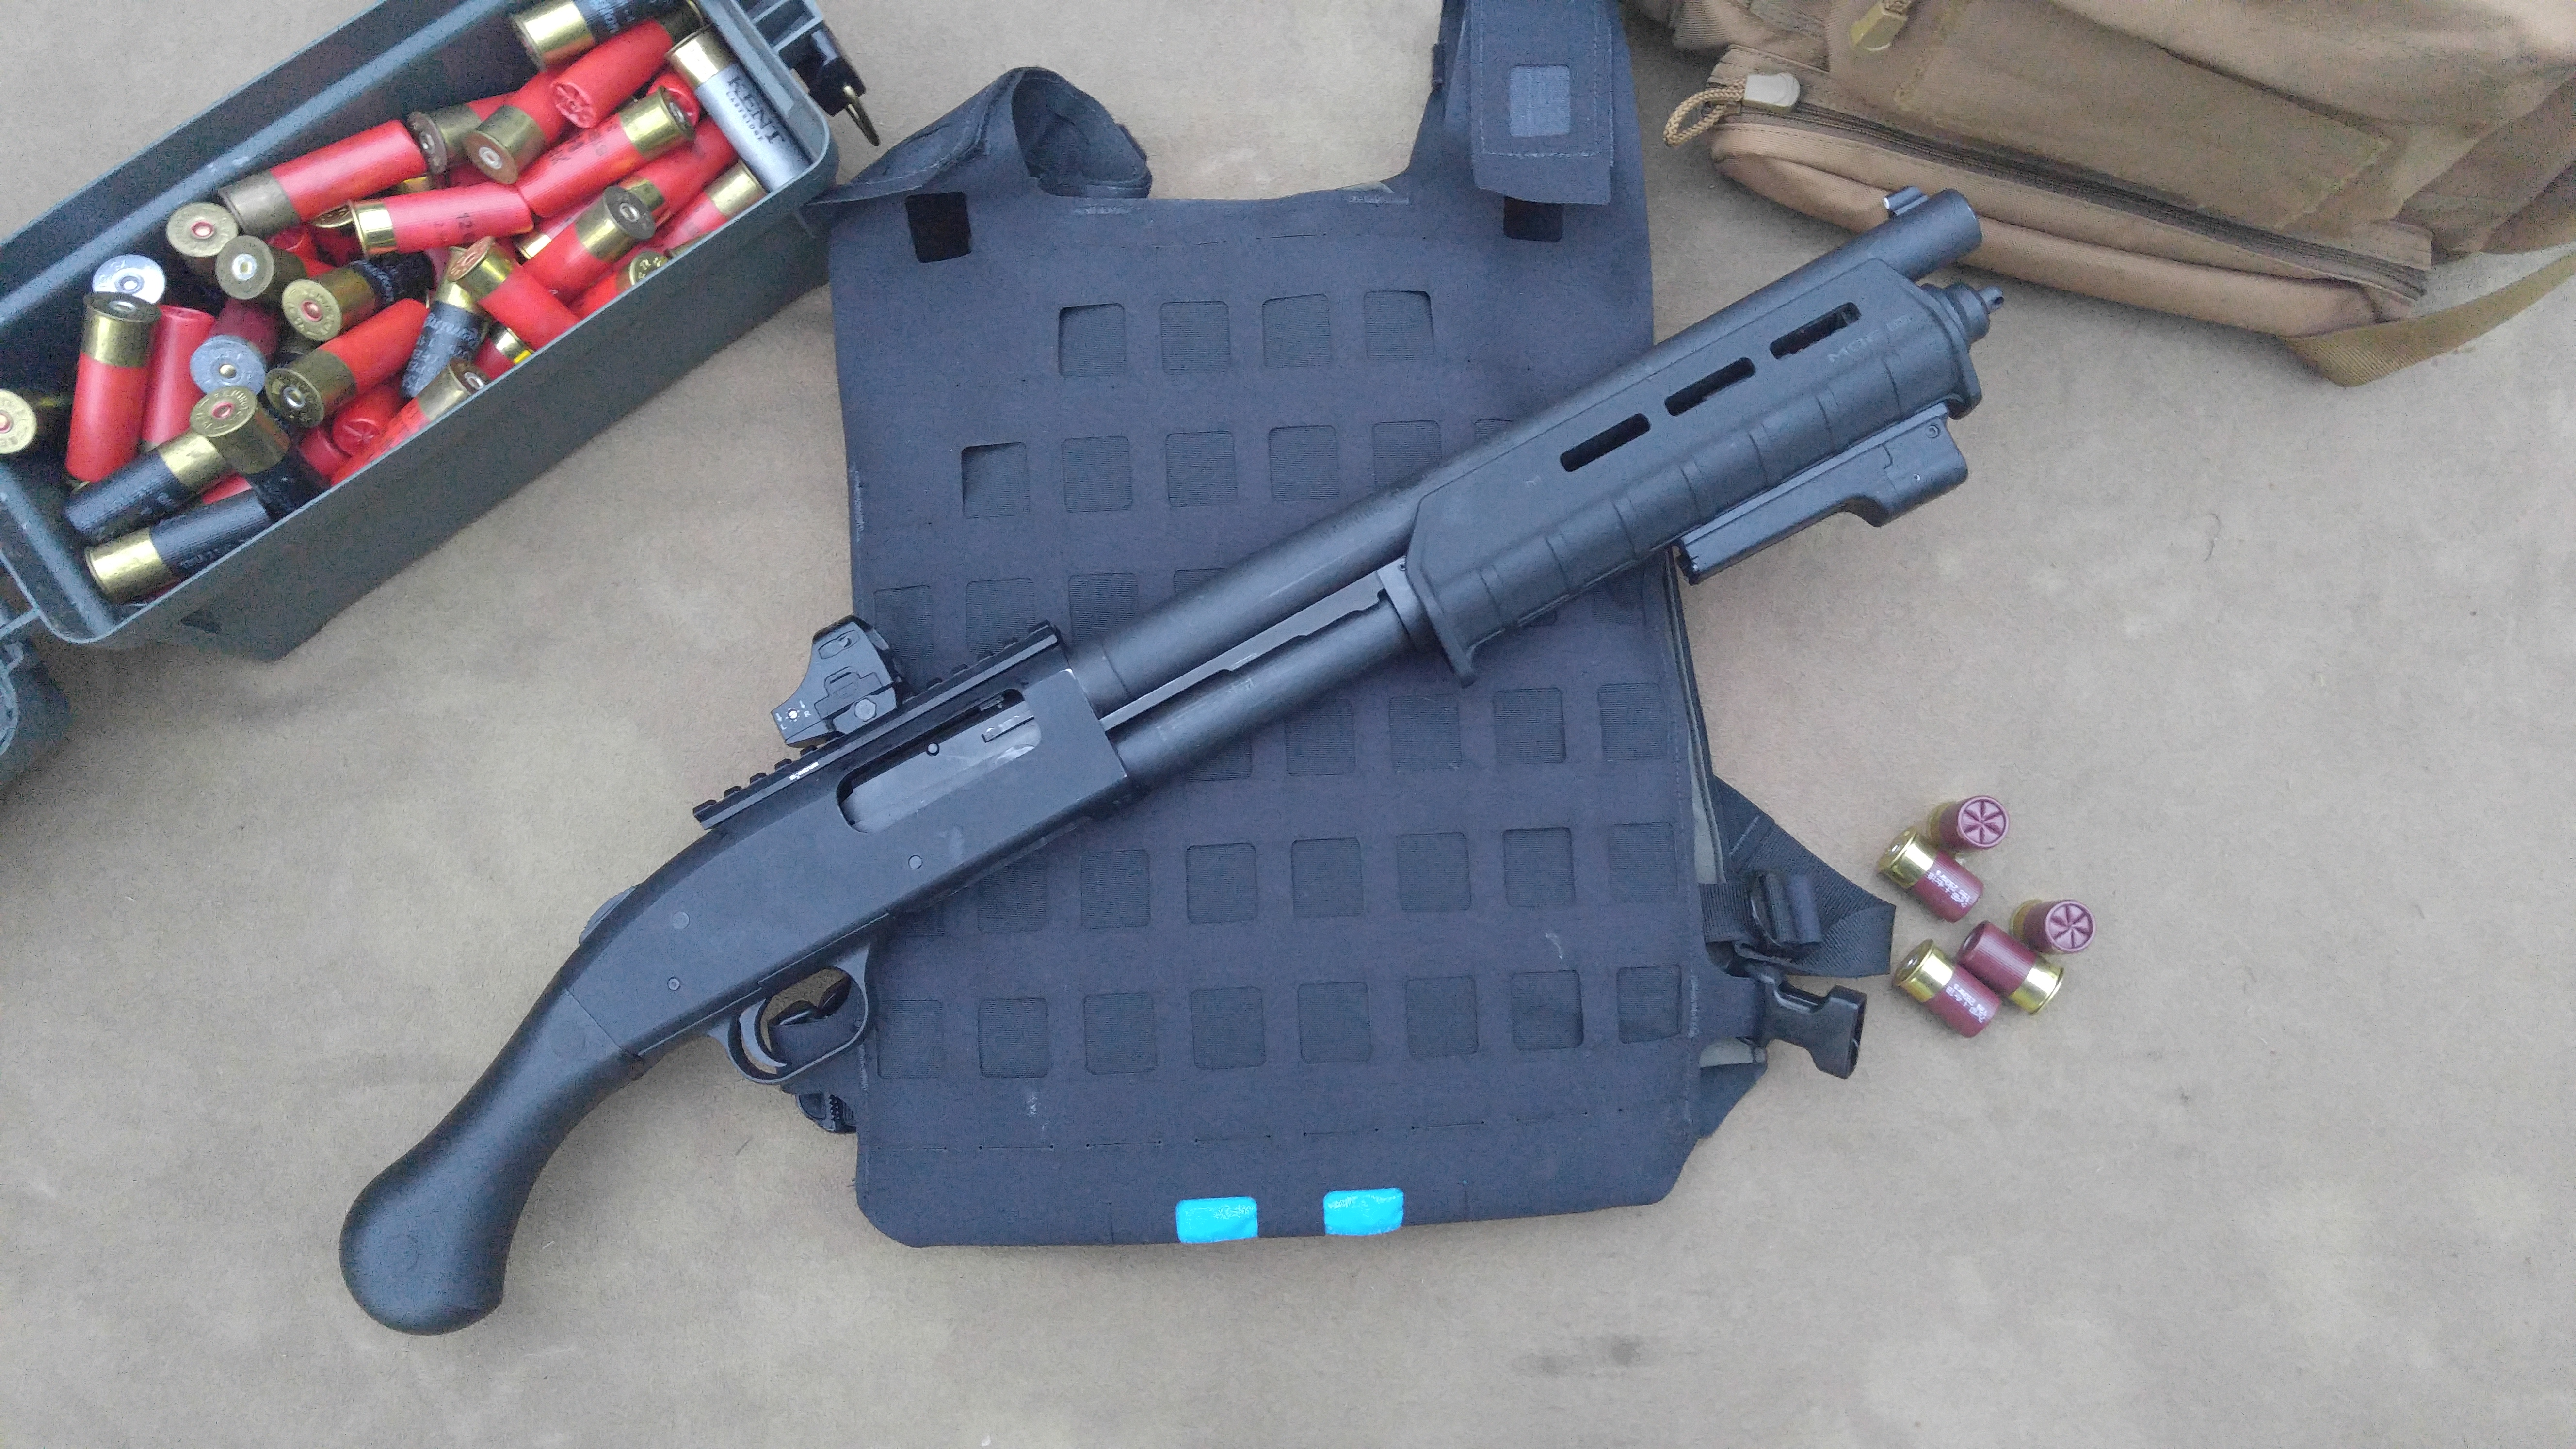 Meosight 3 with 590 and vest